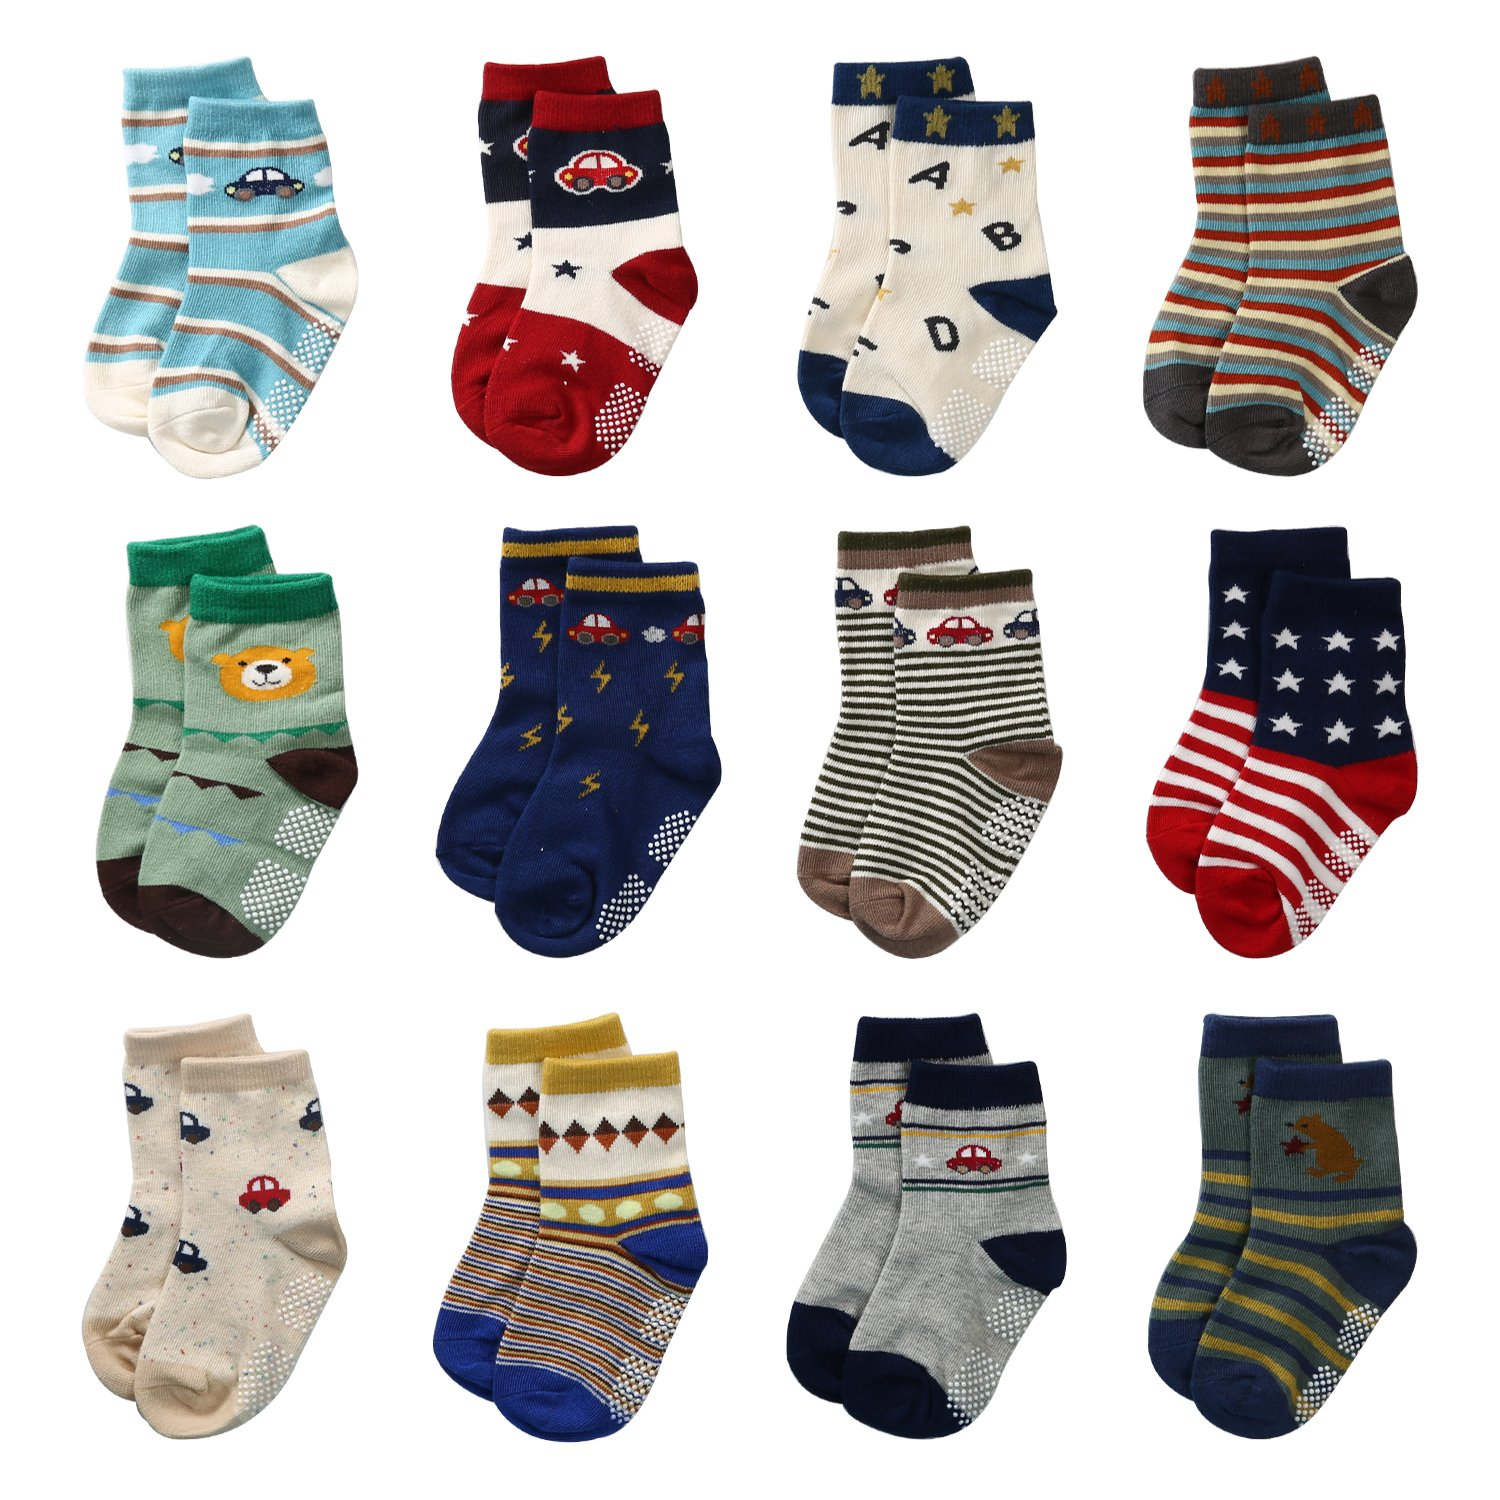 Flanhiri Baby Boys Toddler Non Skid Cotton Socks with Grip